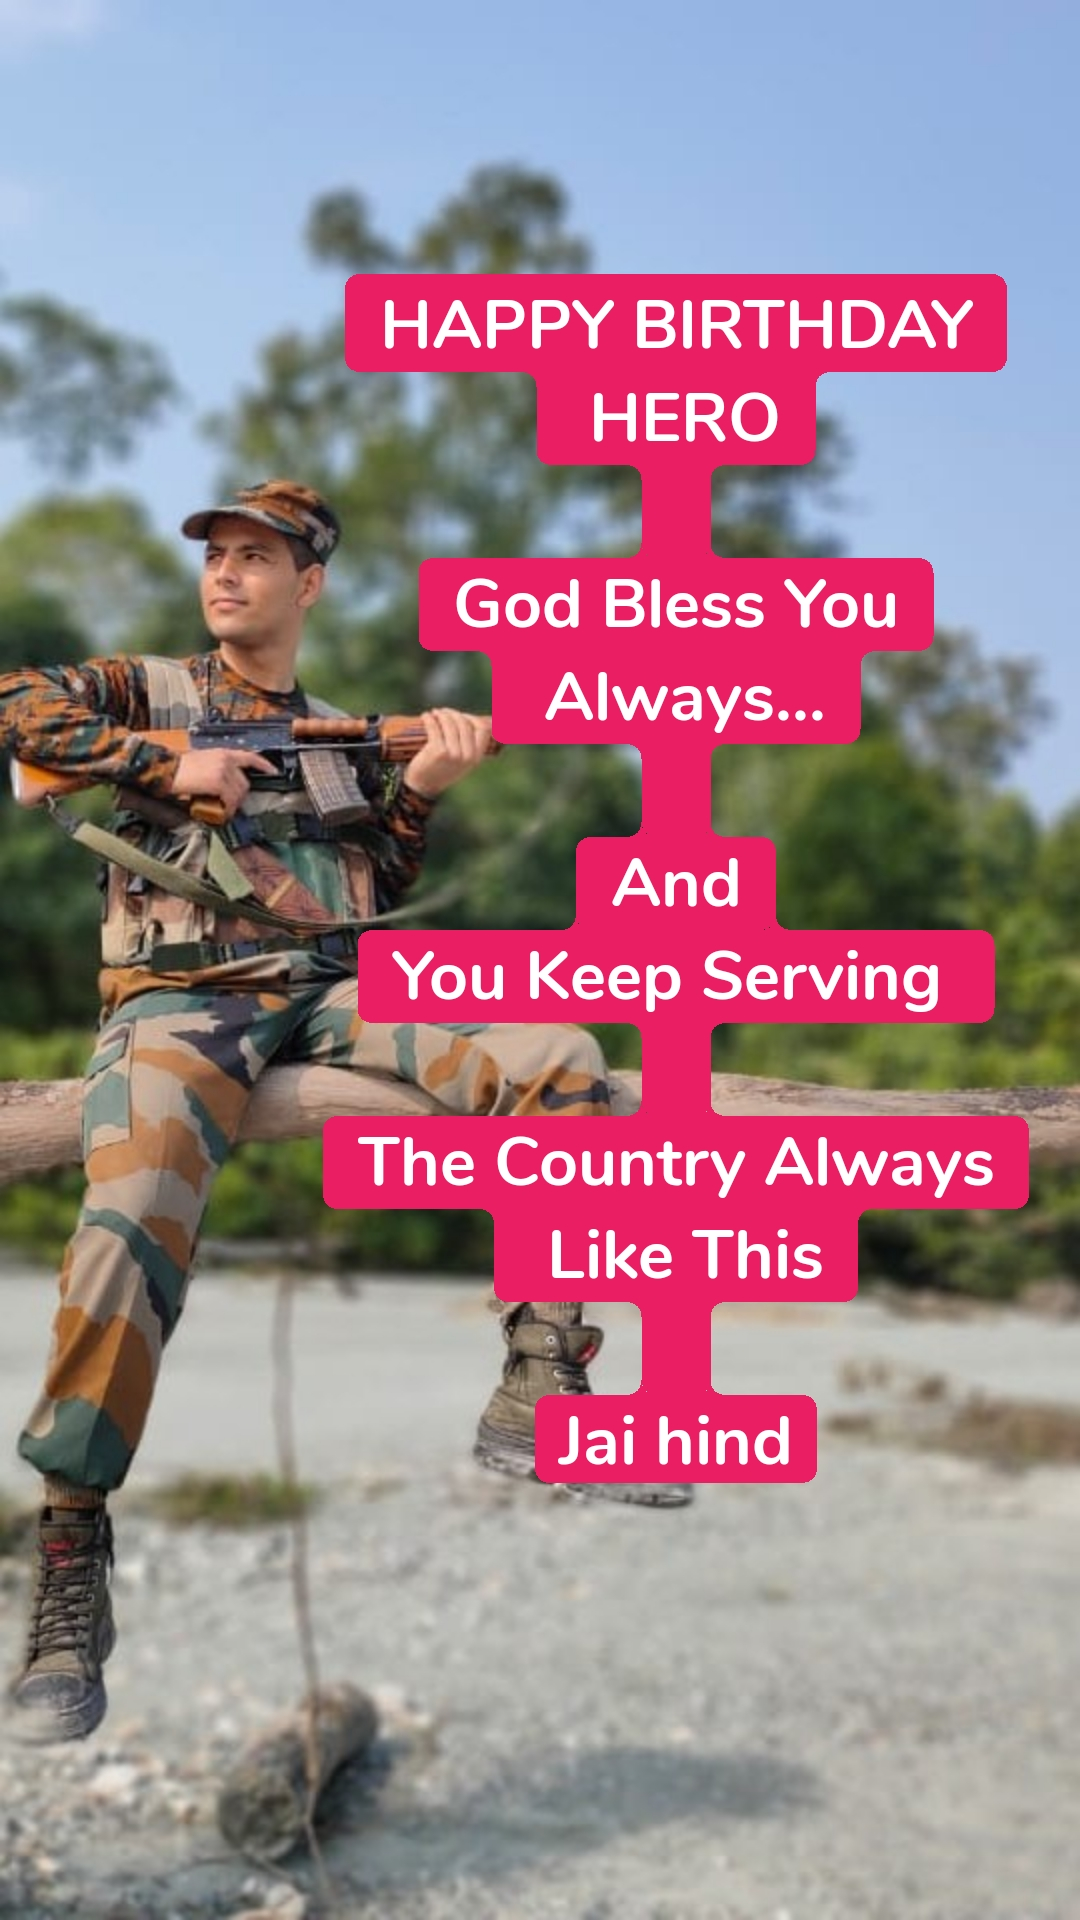 HAPPY BIRTHDAY  HERO  God Bless You  Always...  And You Keep Serving   The Country Always  Like This  Jai hind